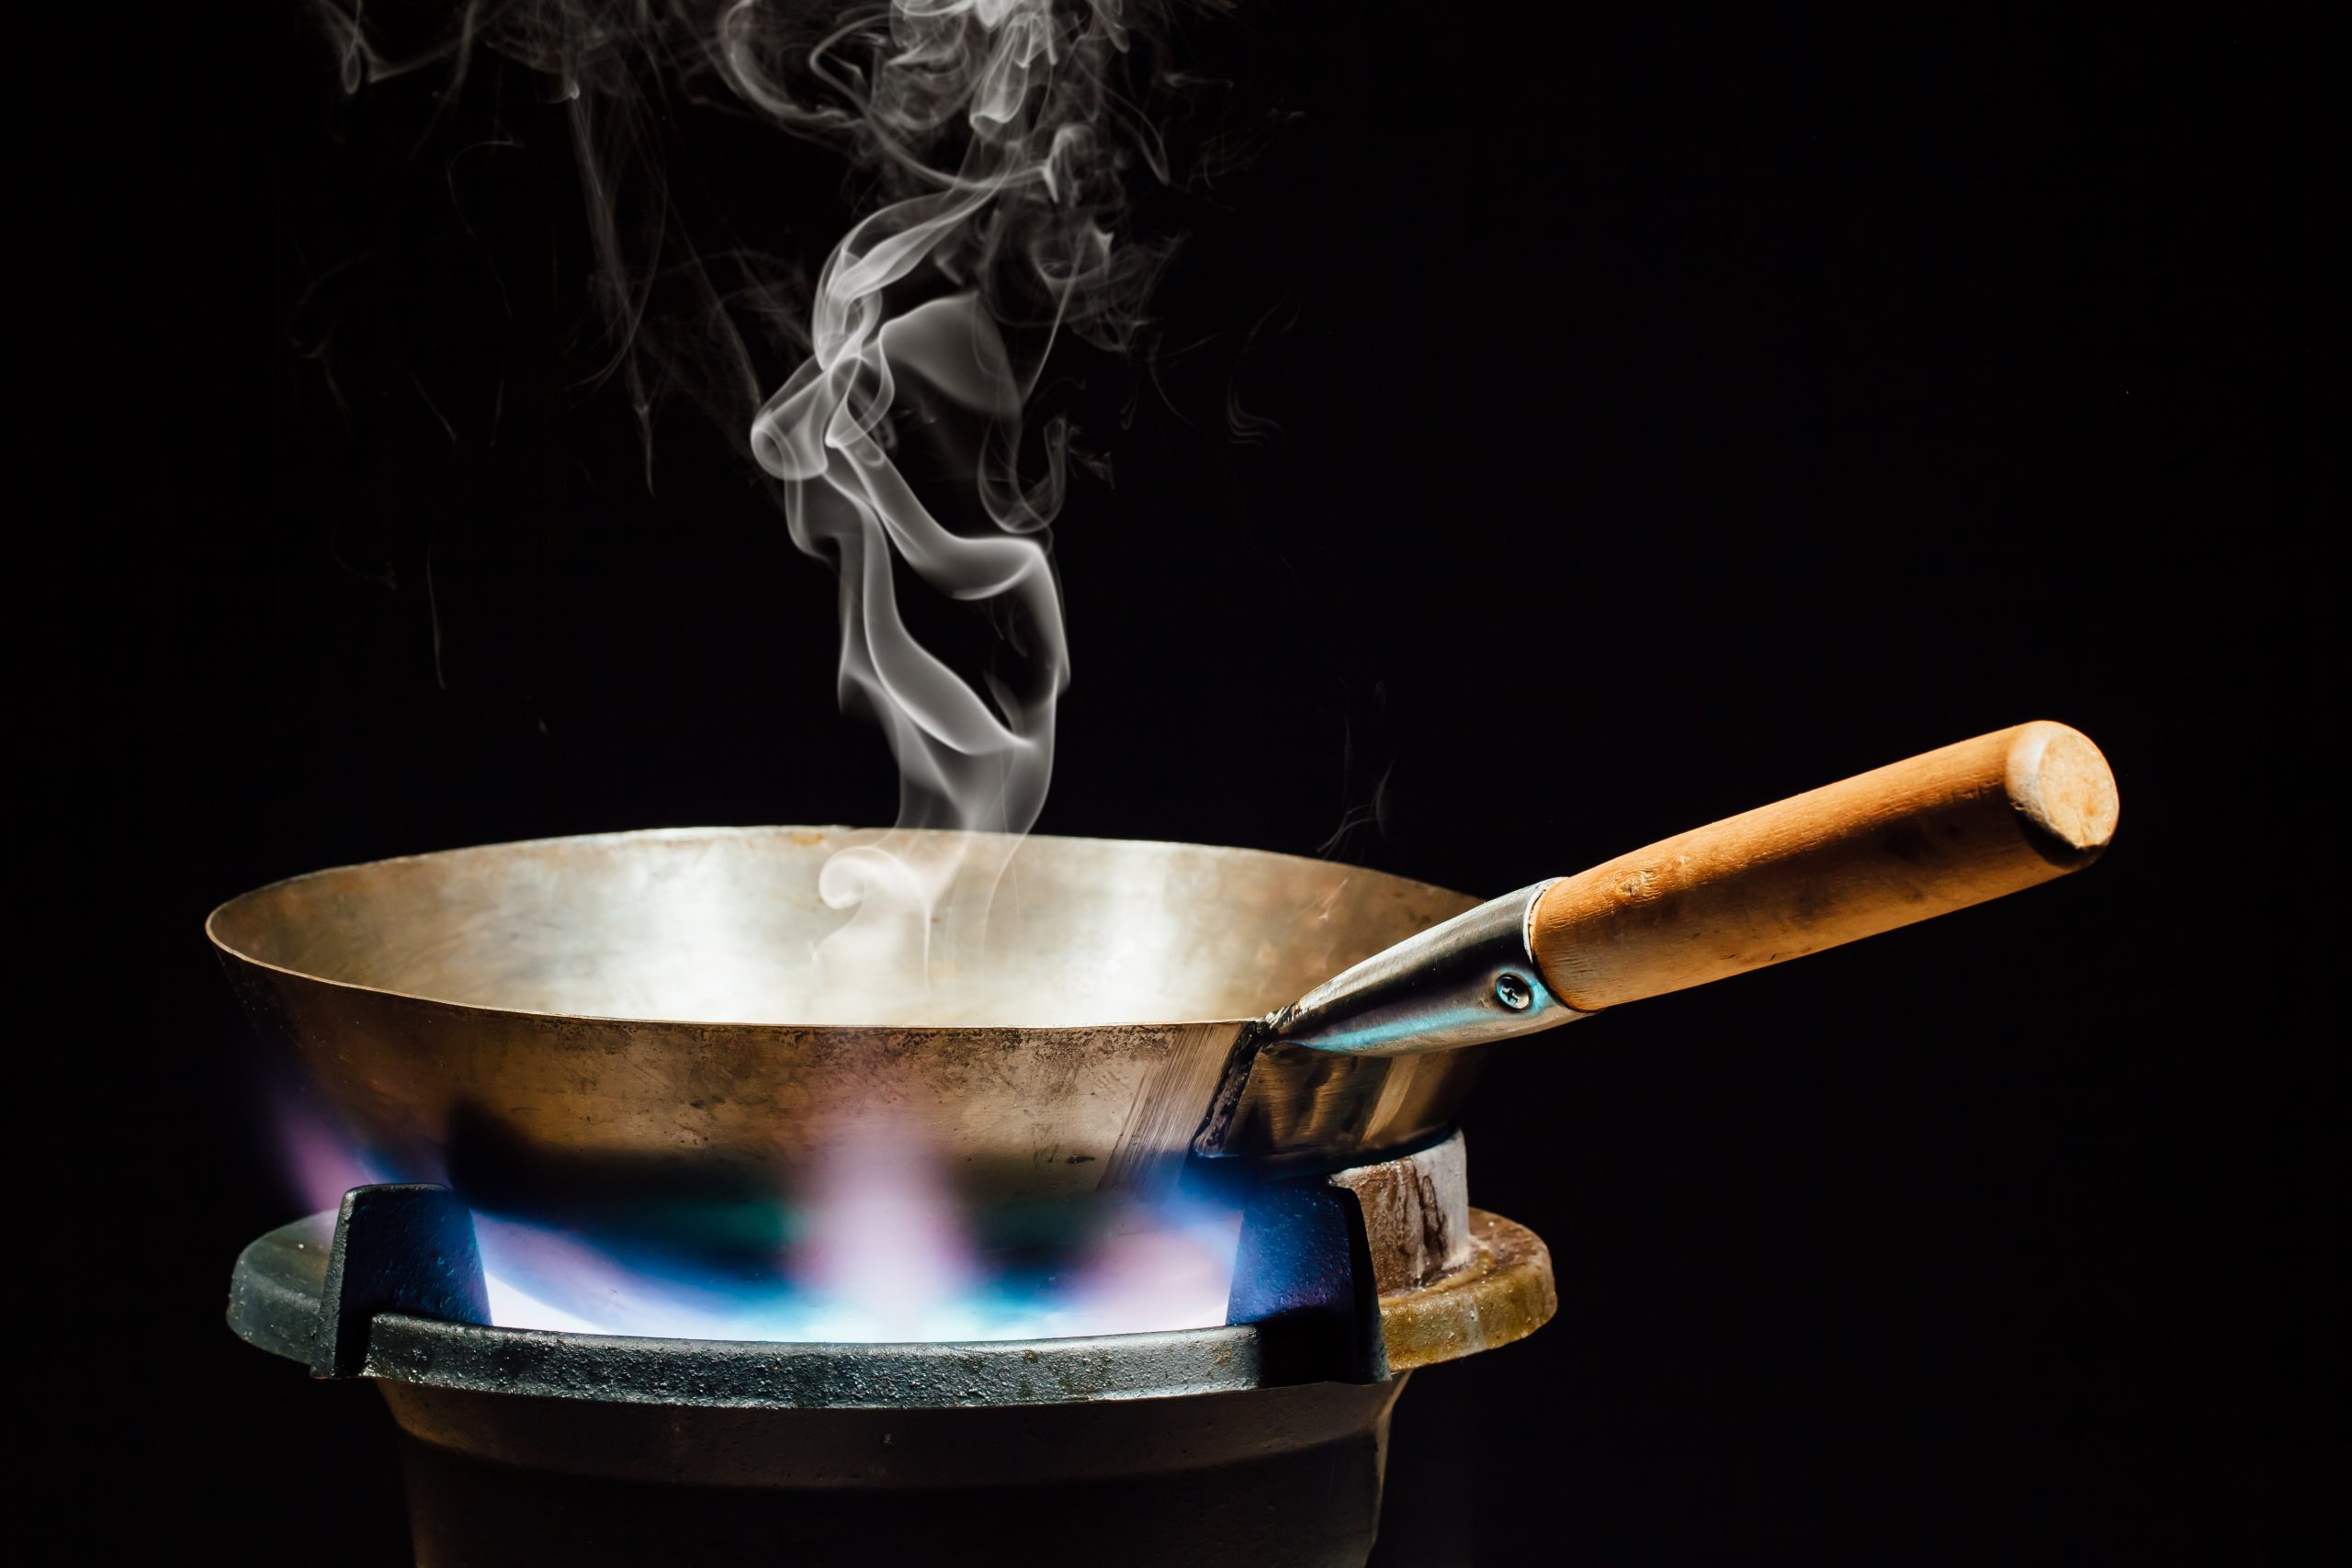 Restaurants Are Winning the Fight With Cities Trying to Ban Gas-Powered Stove